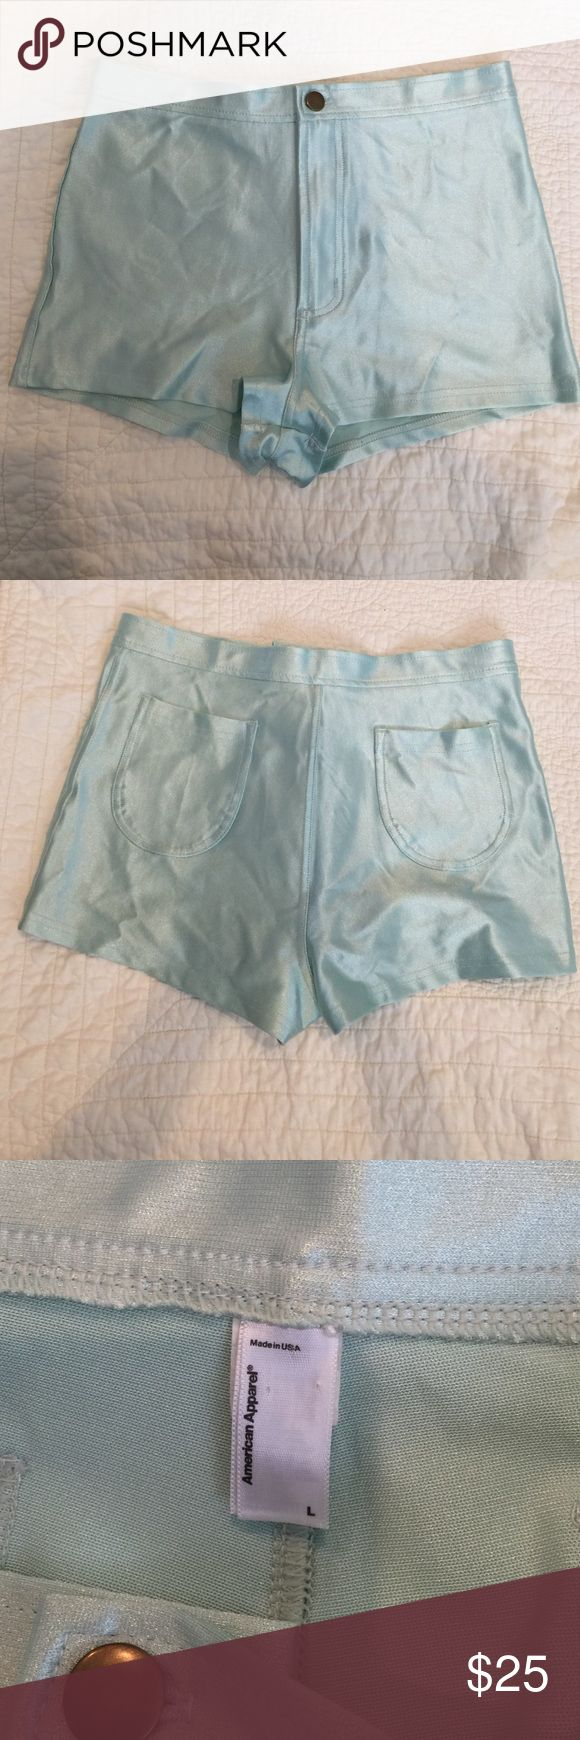 American apparel disco shorts American apparel mint disco shorts American Apparel Shorts